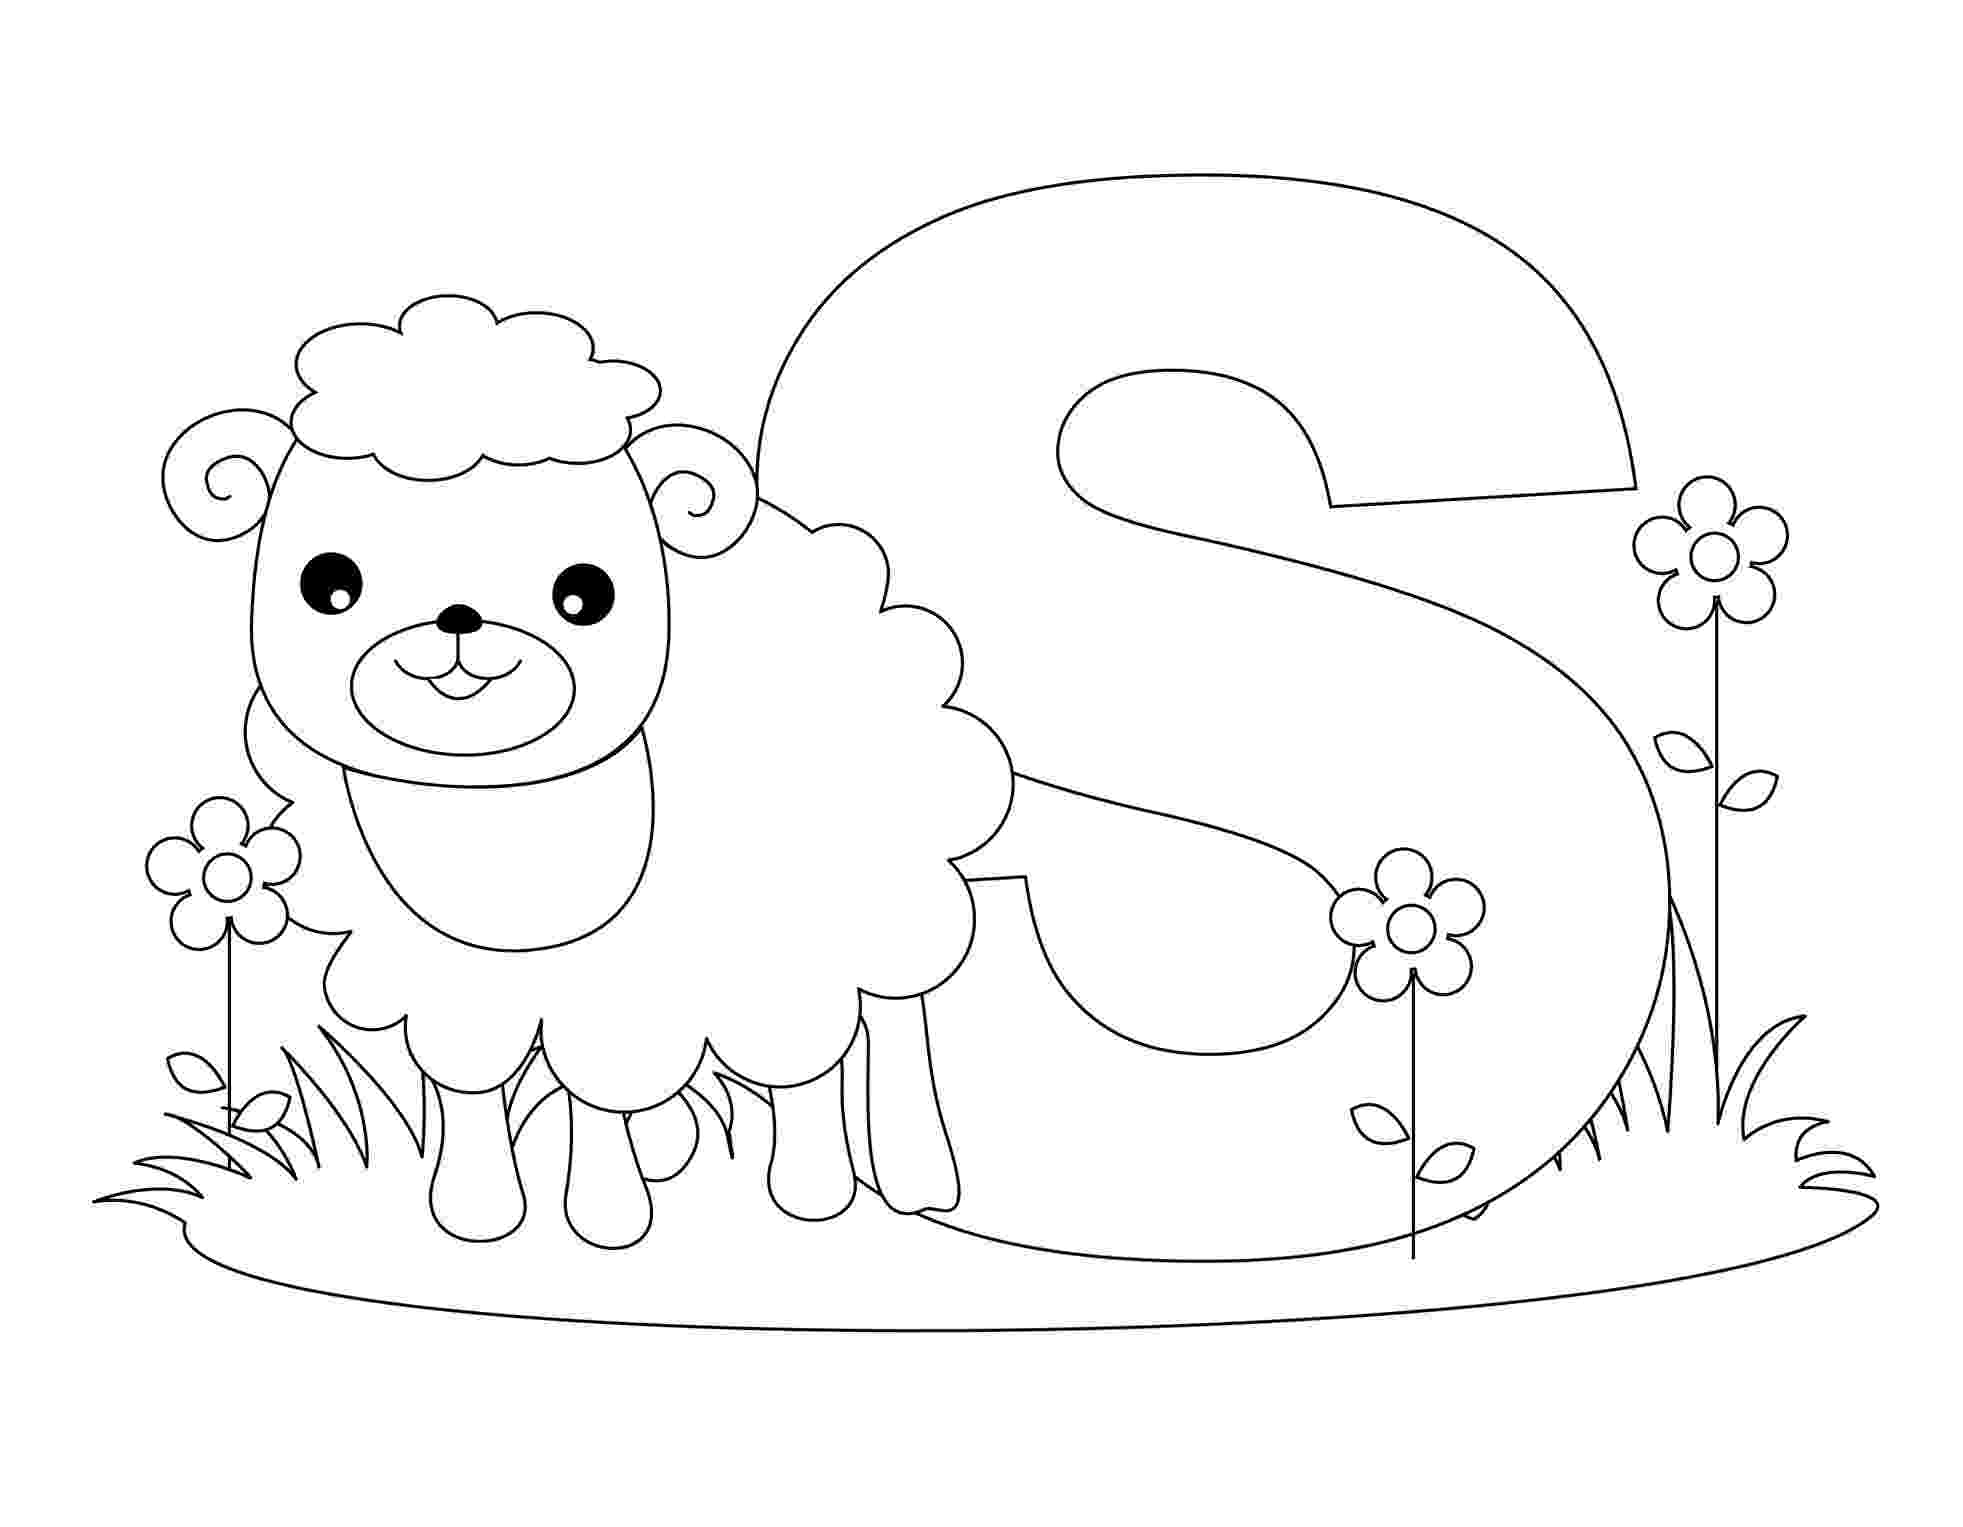 coloring animal alphabet free printable alphabet coloring pages for kids best coloring alphabet animal